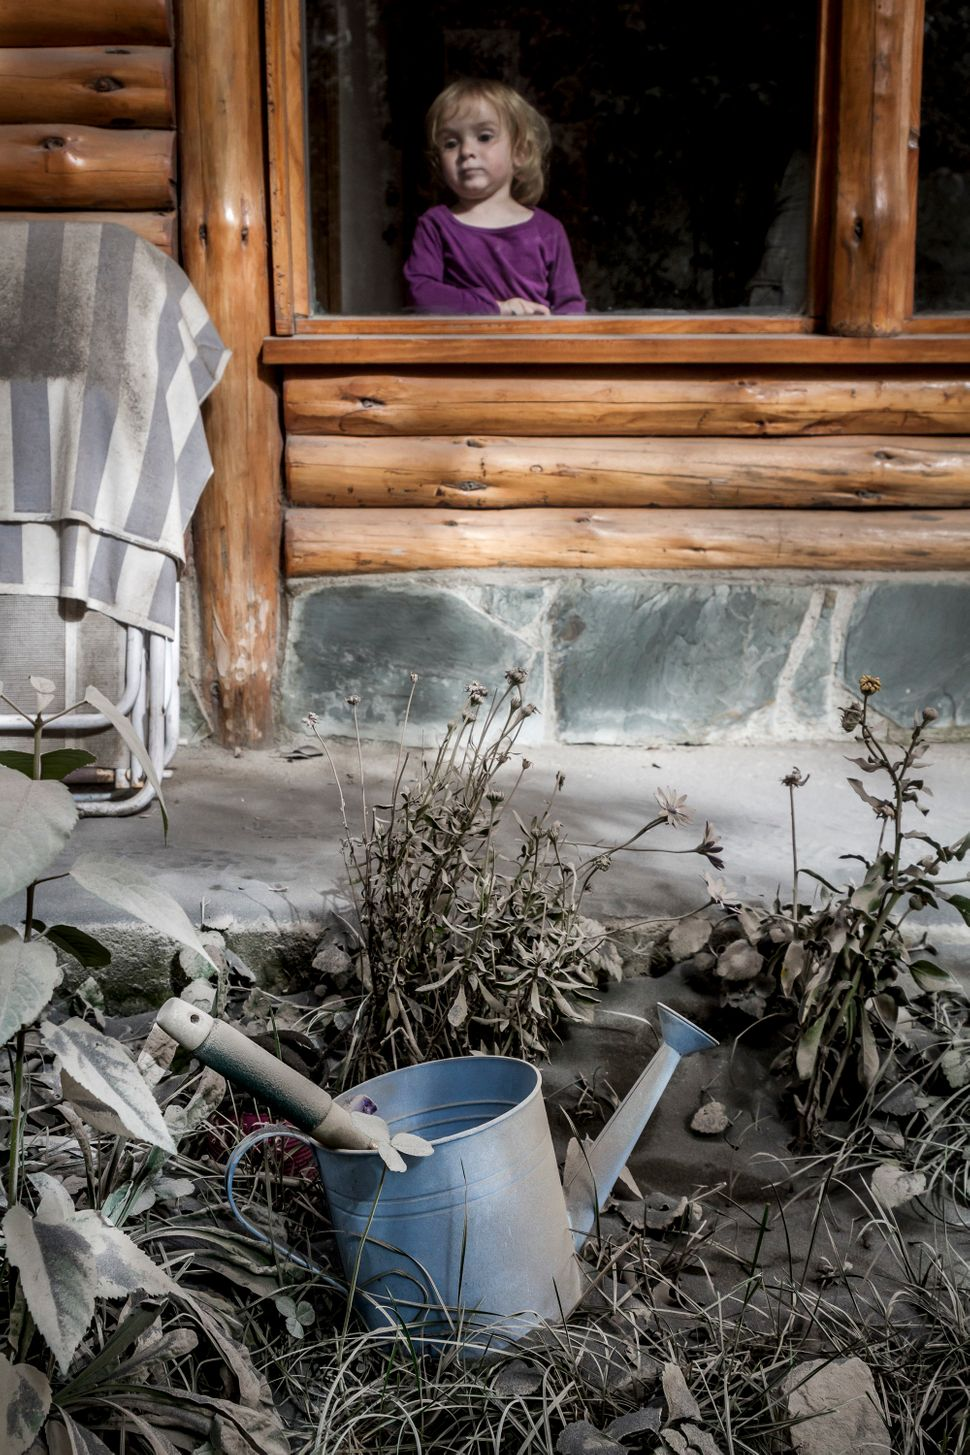 A girl looks through a window as volcanic ash from Chile's Calbuco volcano covers her garden in Villa La Angostura, southern